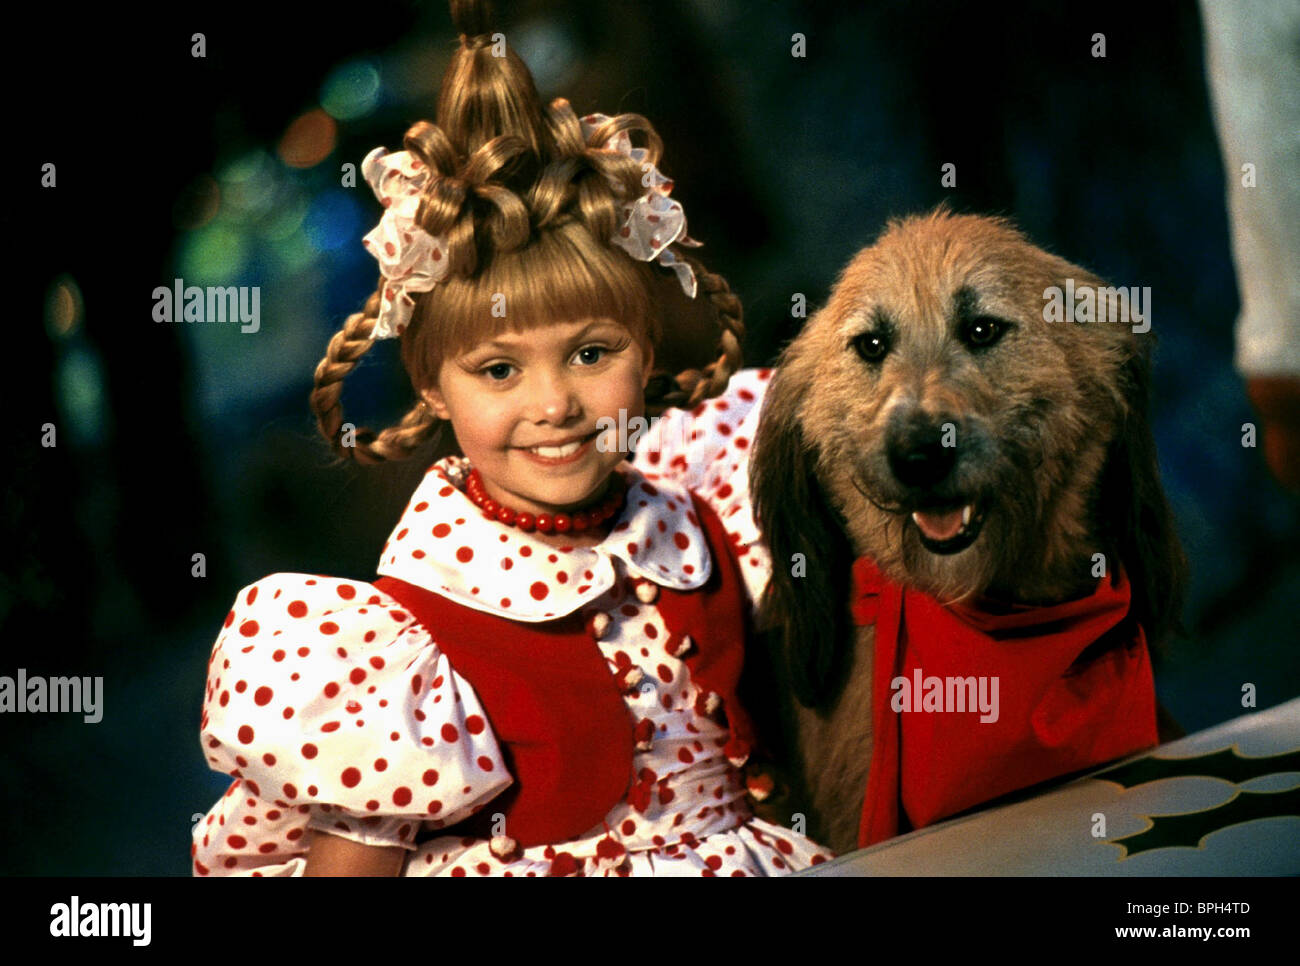 TAYLOR MOMSEN u0026 MAX THE DOG HOW THE GRINCH STOLE CHRISTMAS (2000)  sc 1 st  Alamy & TAYLOR MOMSEN u0026 MAX THE DOG HOW THE GRINCH STOLE CHRISTMAS (2000 ...